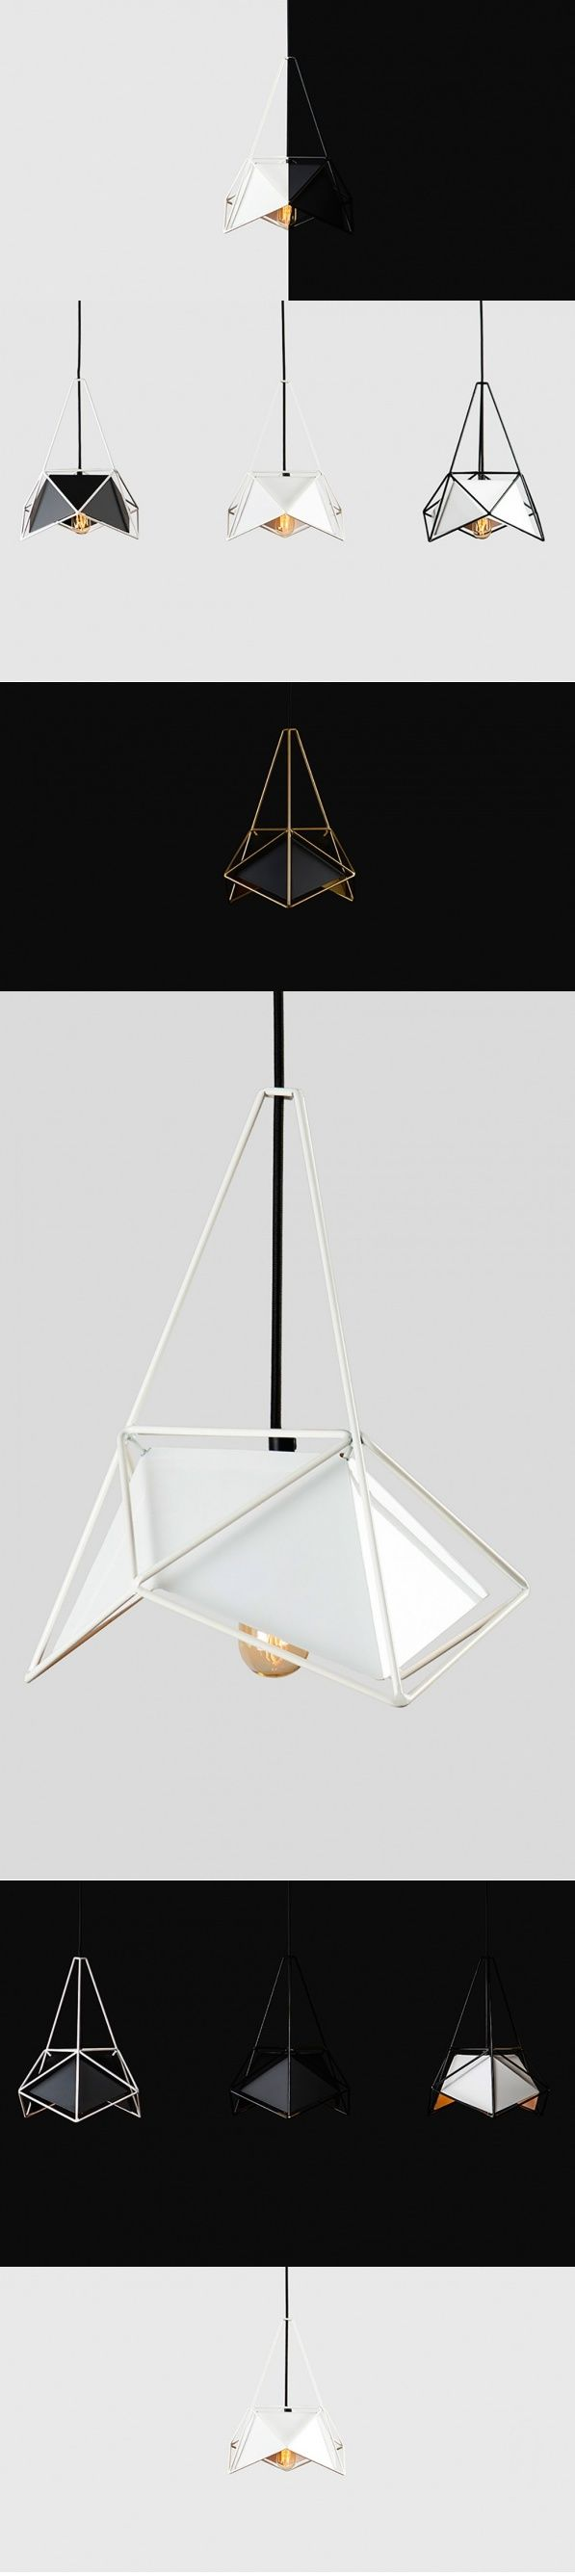 Constructed Entirely From Metal The U32 1 Pendant Lamp Explores Concept Of Modern